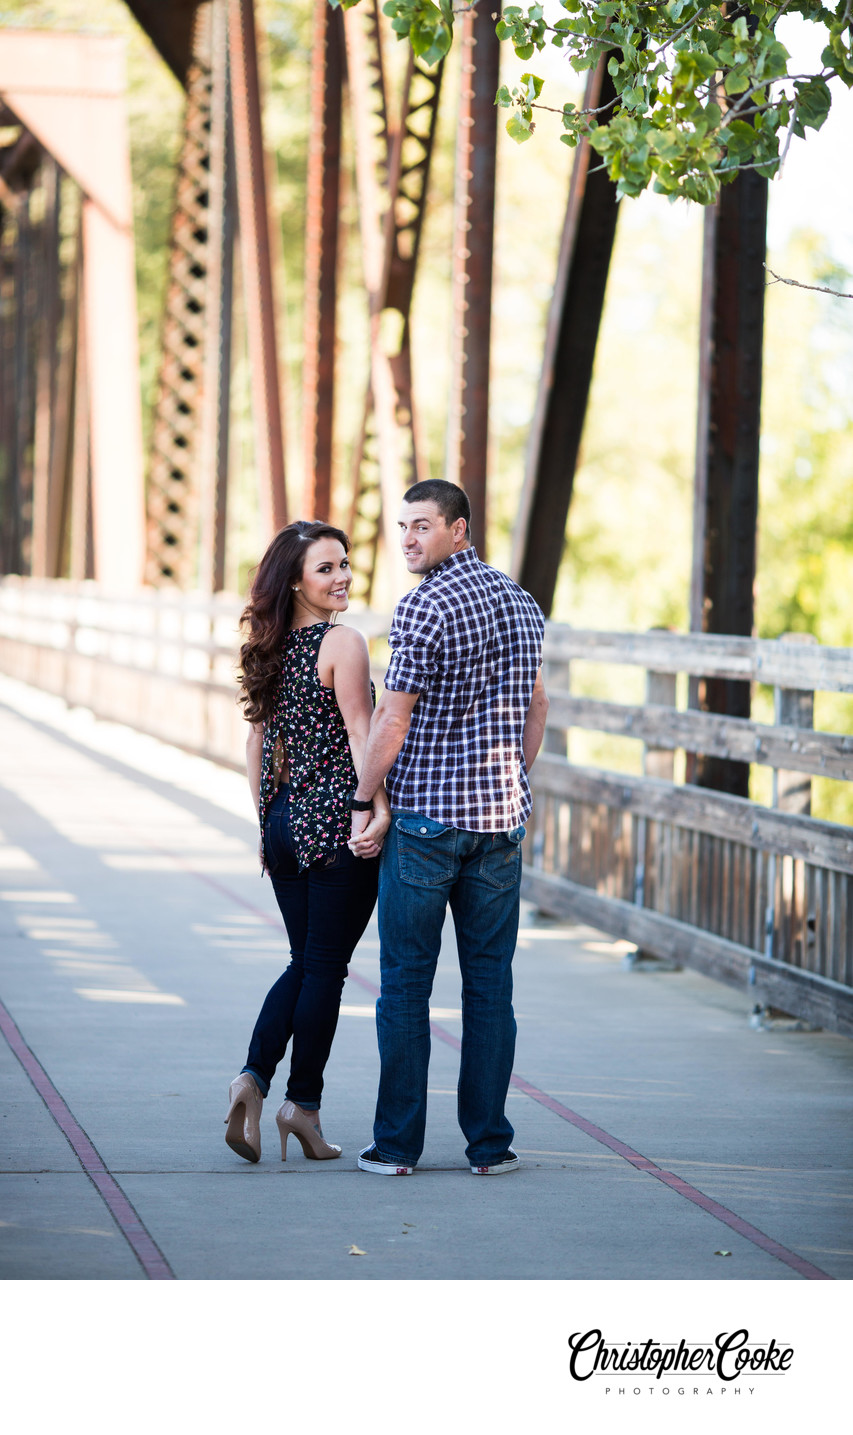 Winters Engagement Photographer